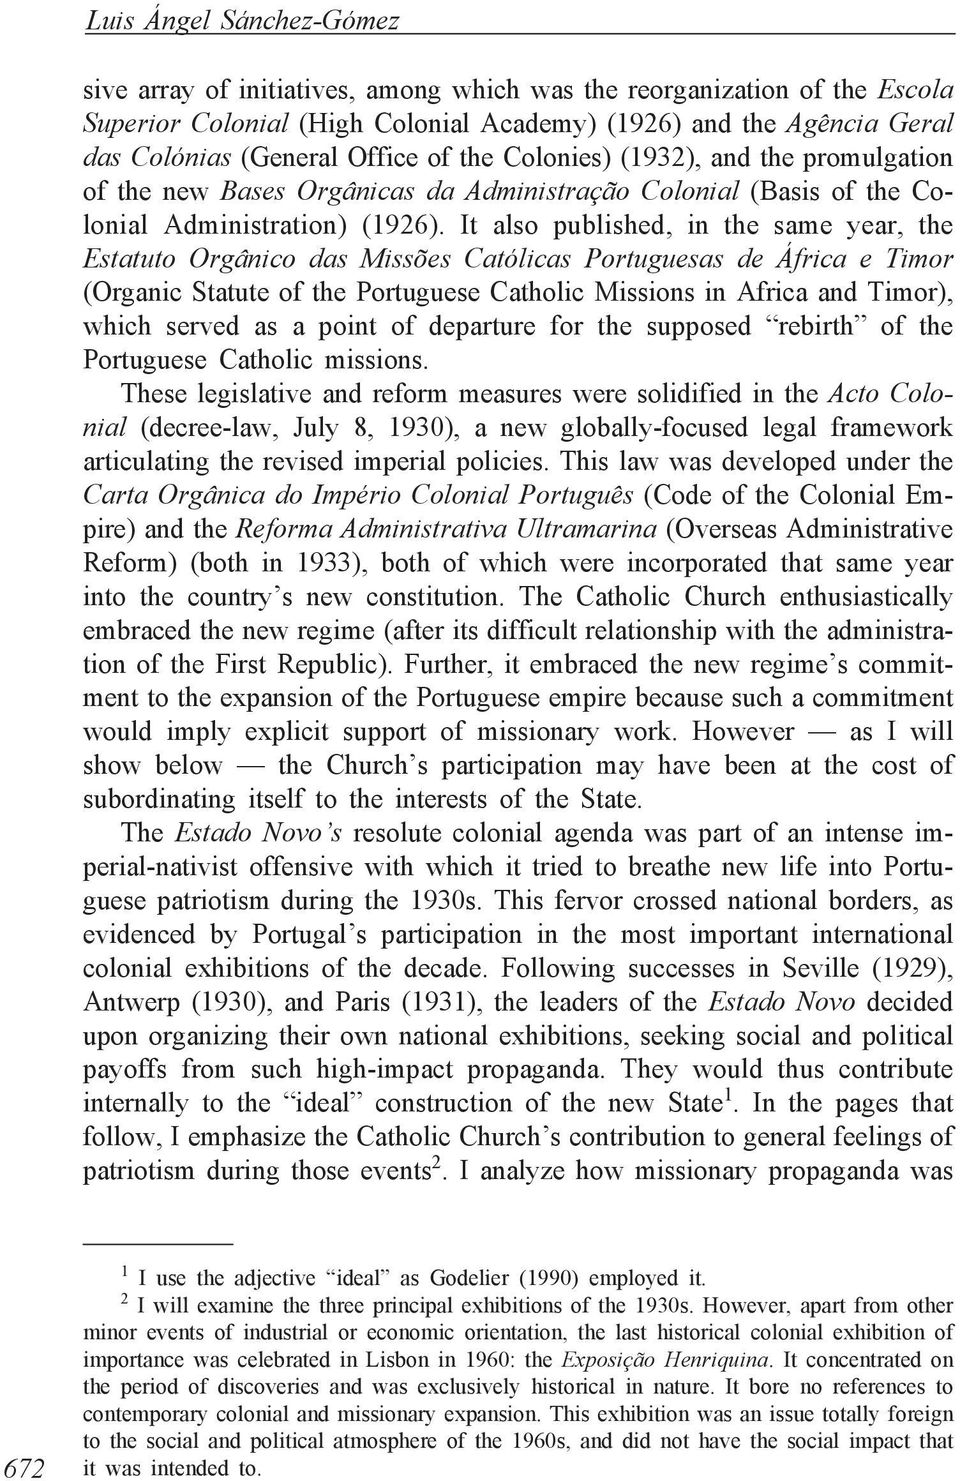 It also published, in the same year, the Estatuto Orgânico das Missões Católicas Portuguesas de África e Timor (Organic Statute of the Portuguese Catholic Missions in Africa and Timor), which served